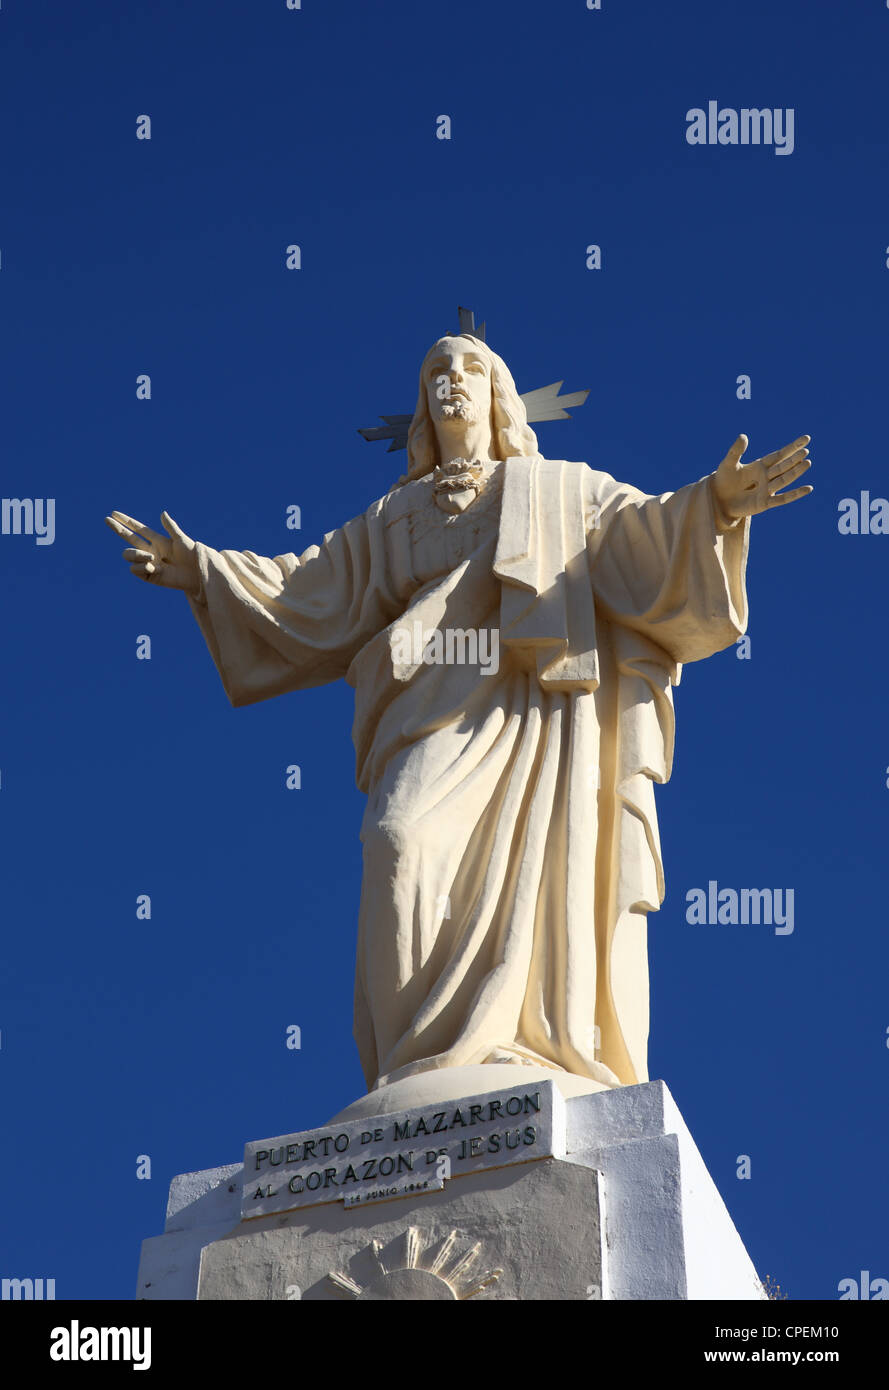 Jesus Christus Statue in Puerto de Mazarron, Spain - Stock Image